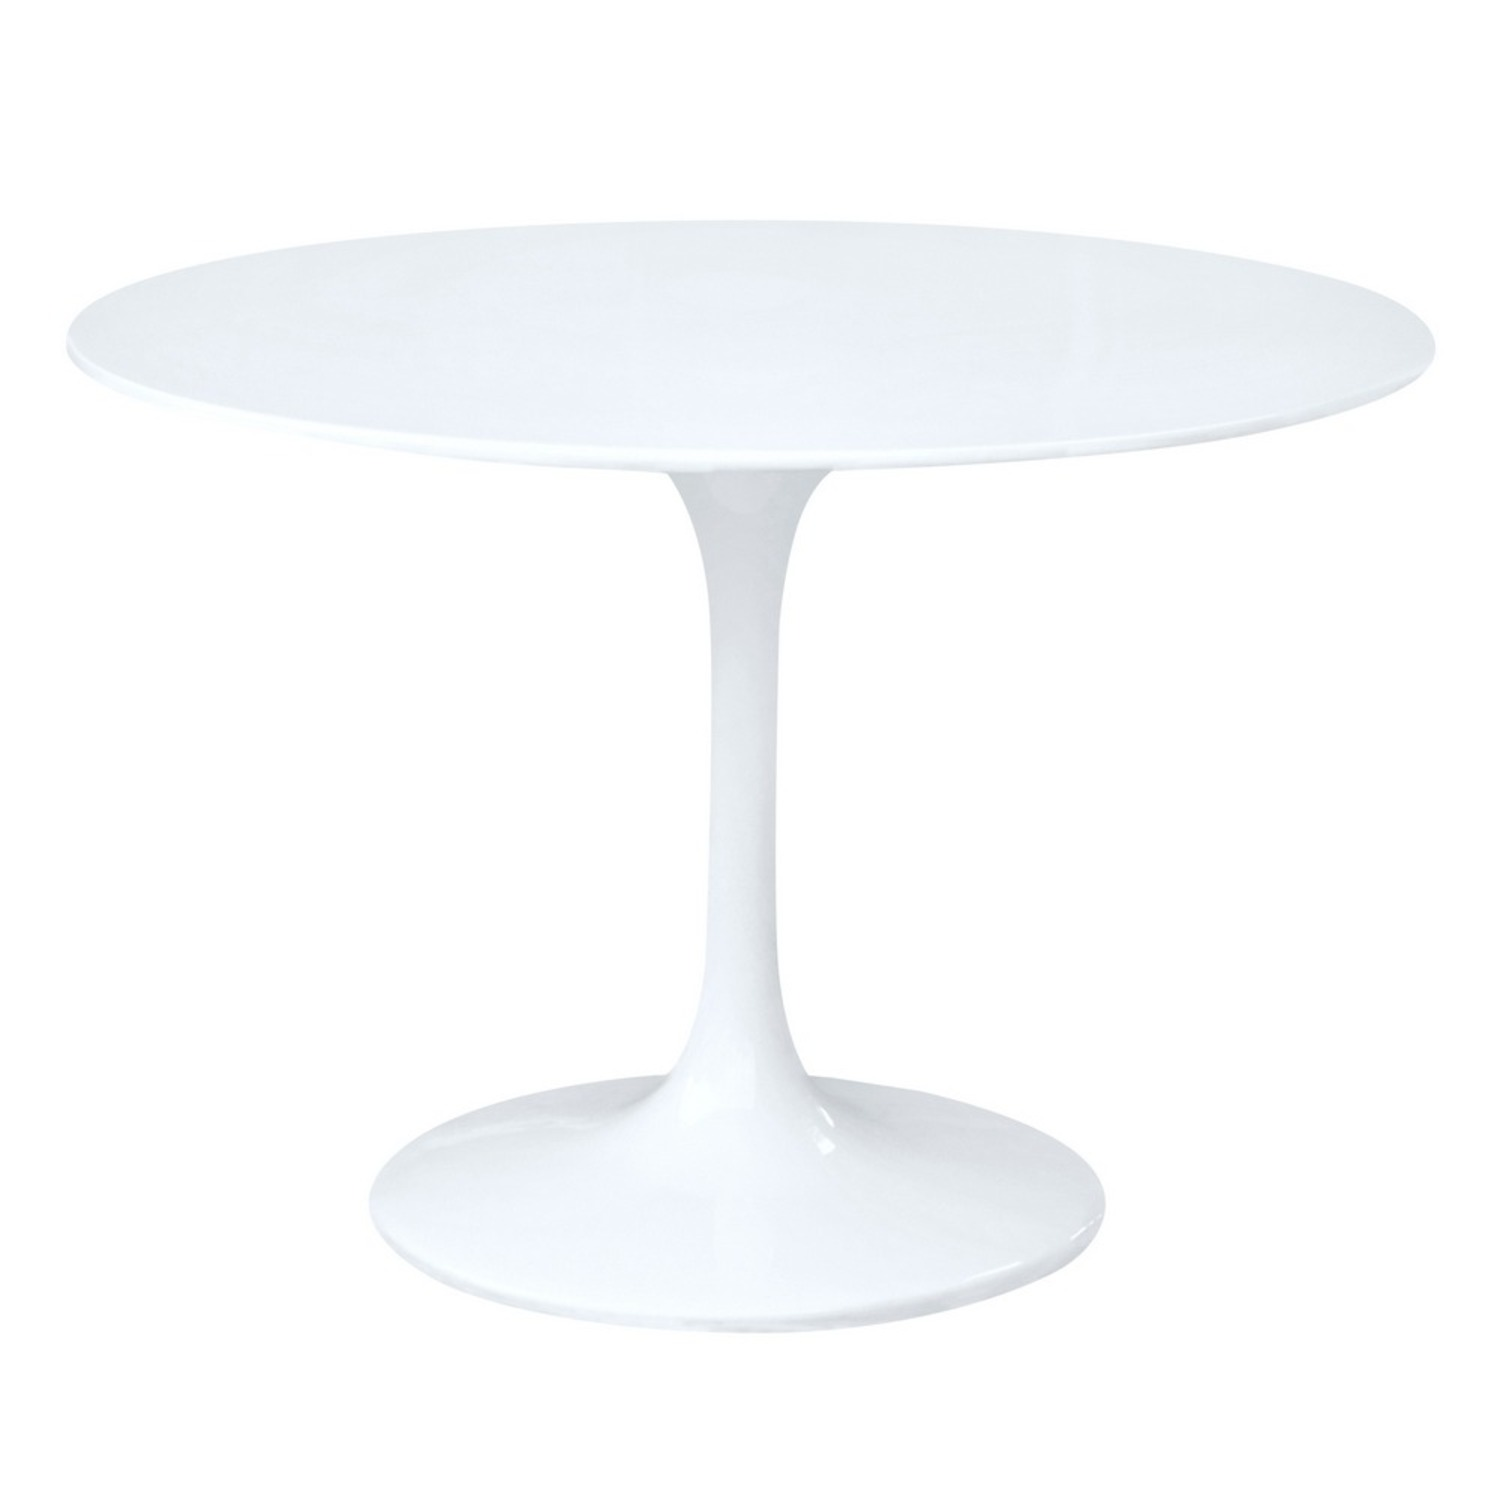 Tulip Style Dining Table In White Fiberglass - image-0